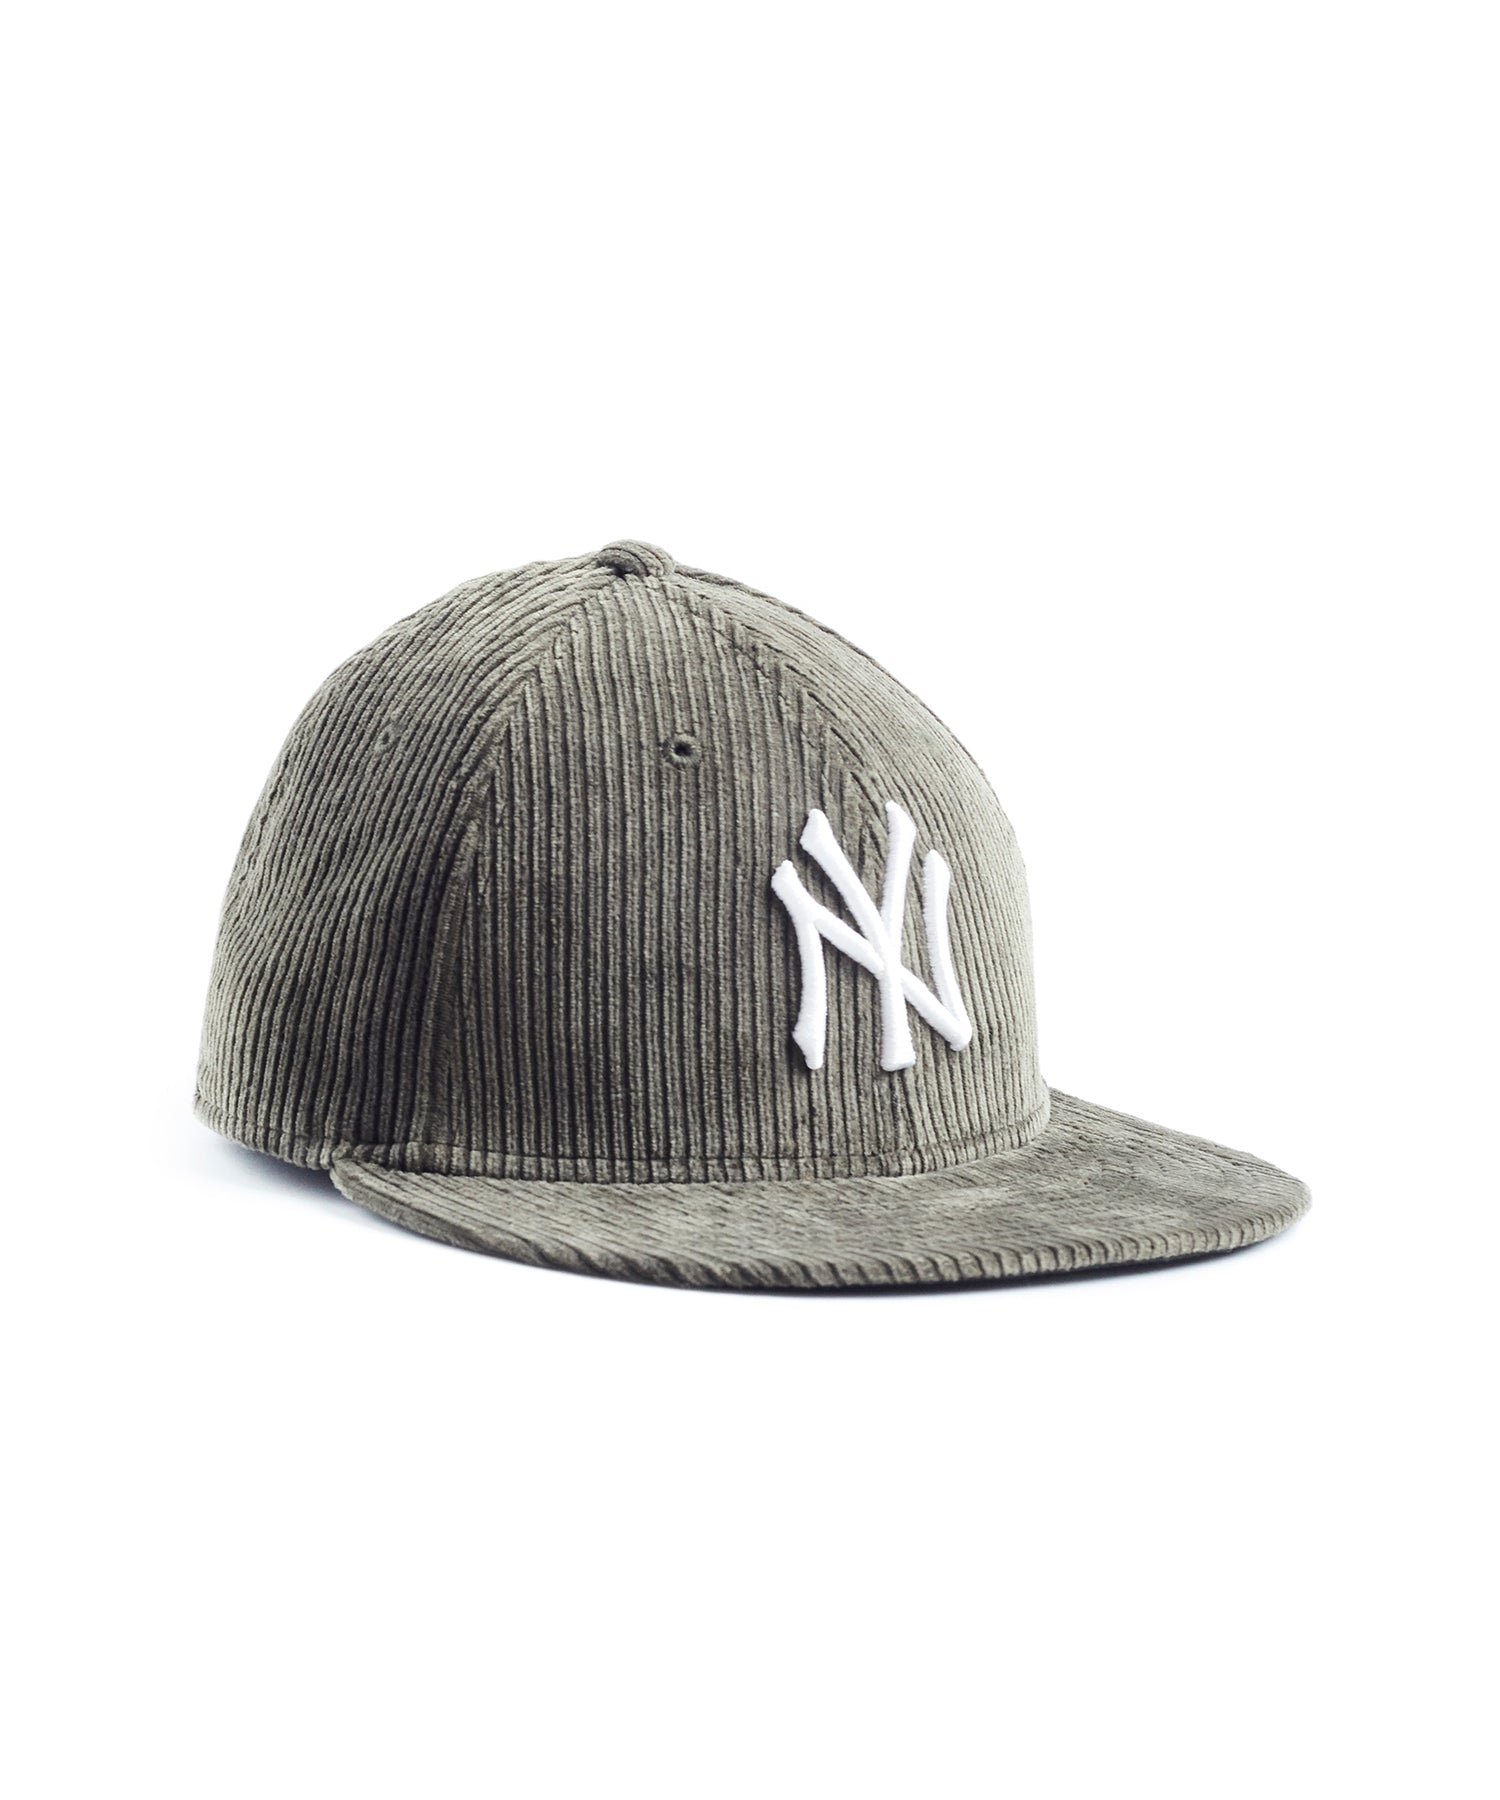 Exclusive Todd Snyder + New Era Corduroy Yankees Cap in Olive